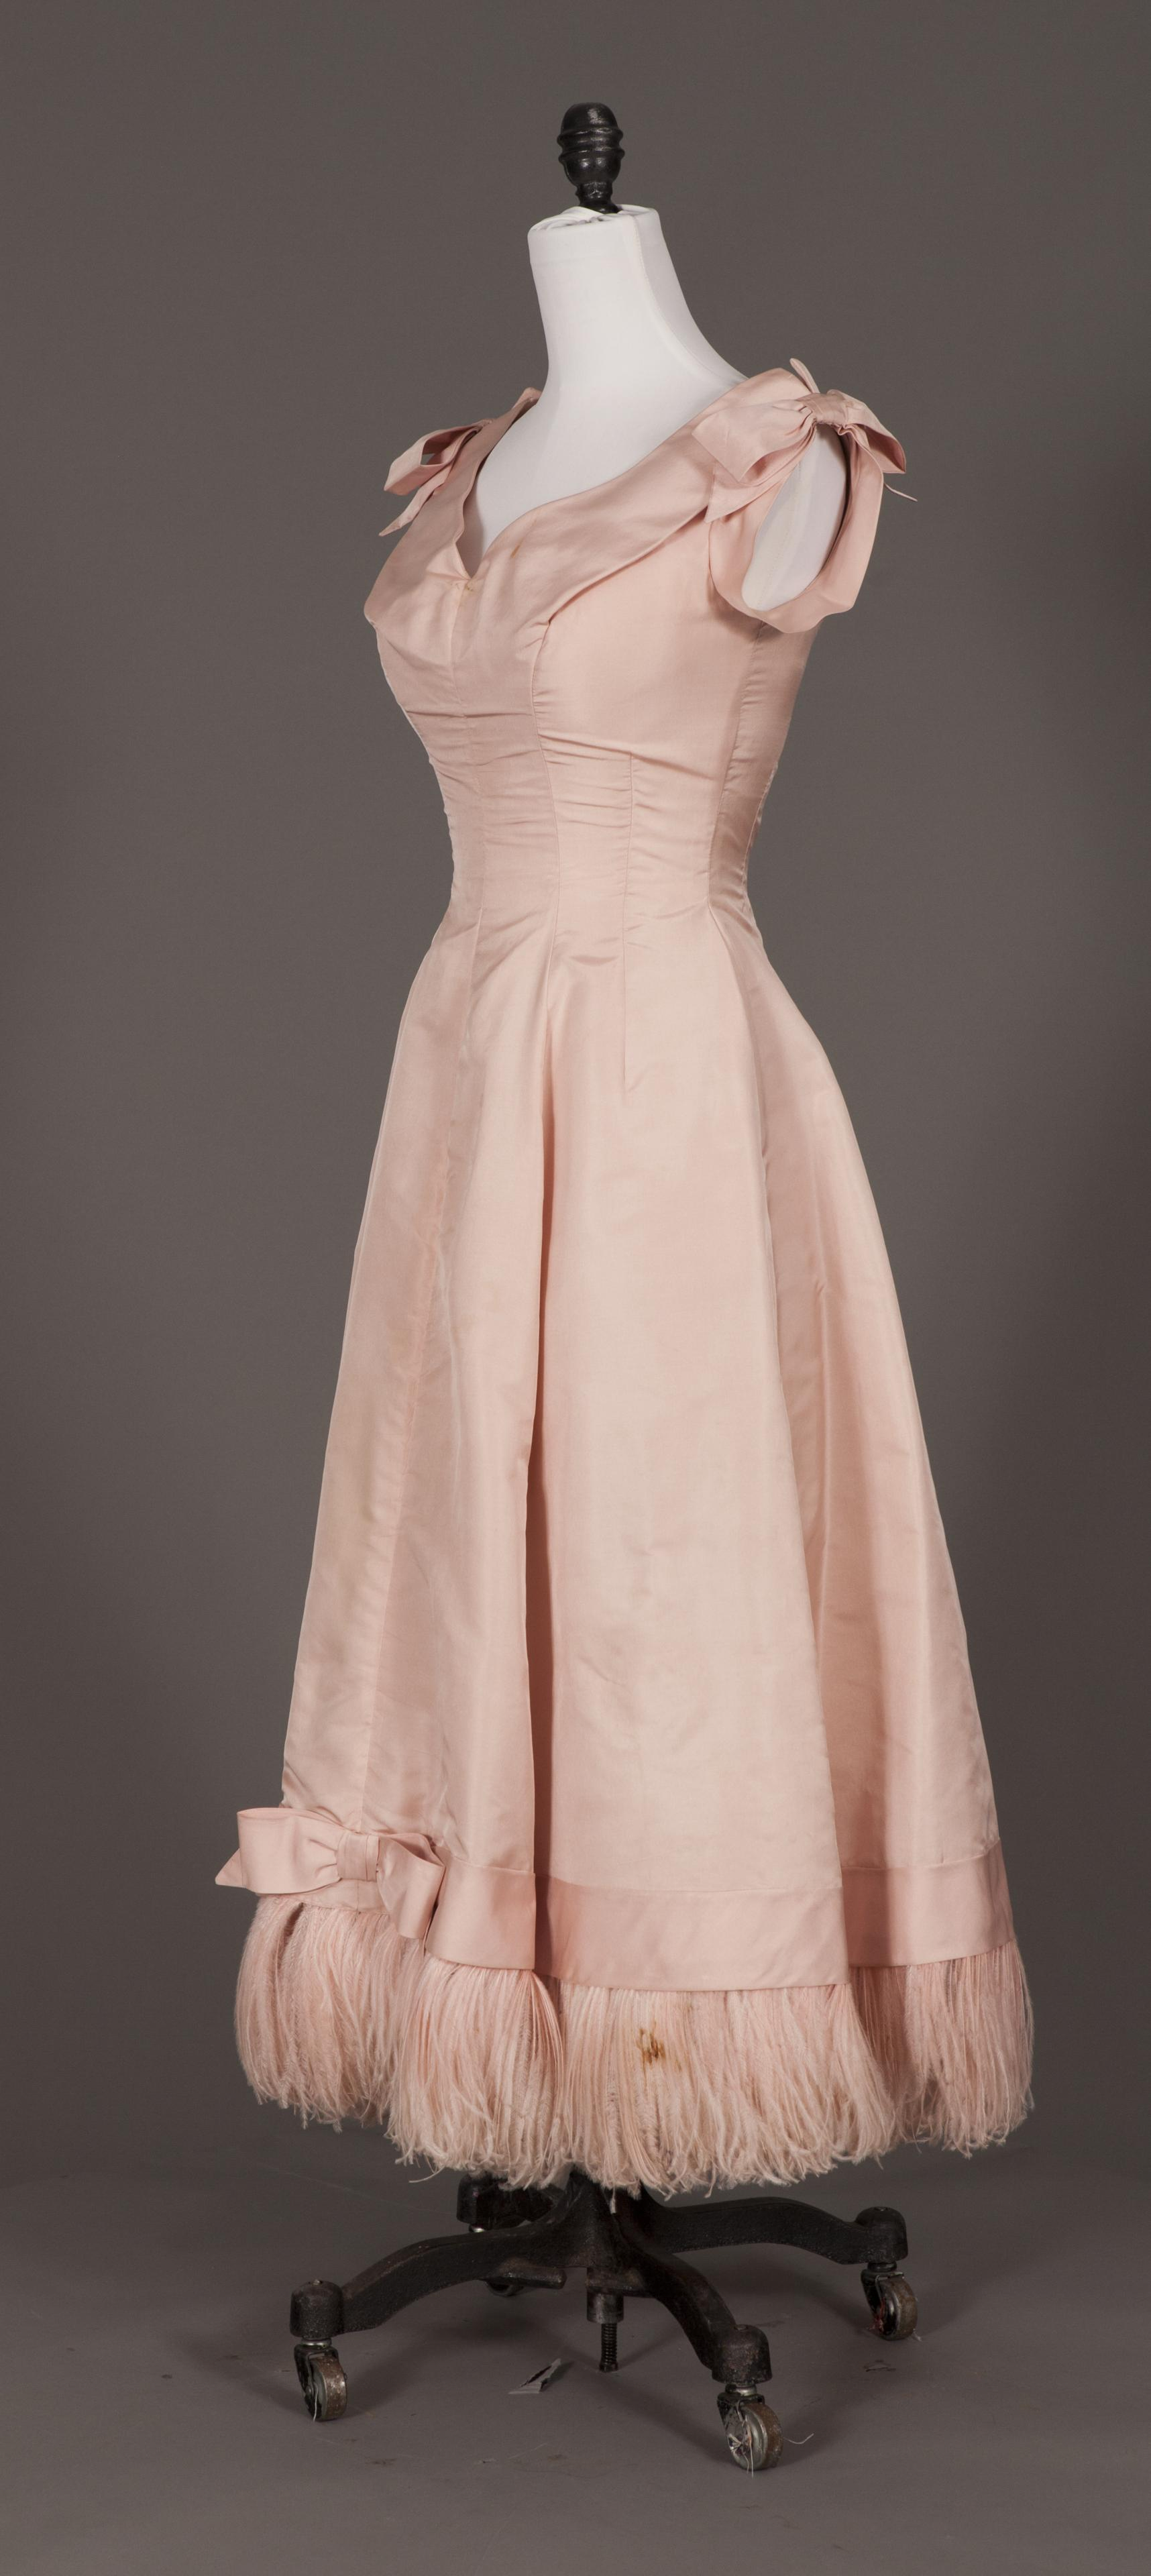 A still from an objectVR of a dress from Vassar's collection of historic clothing